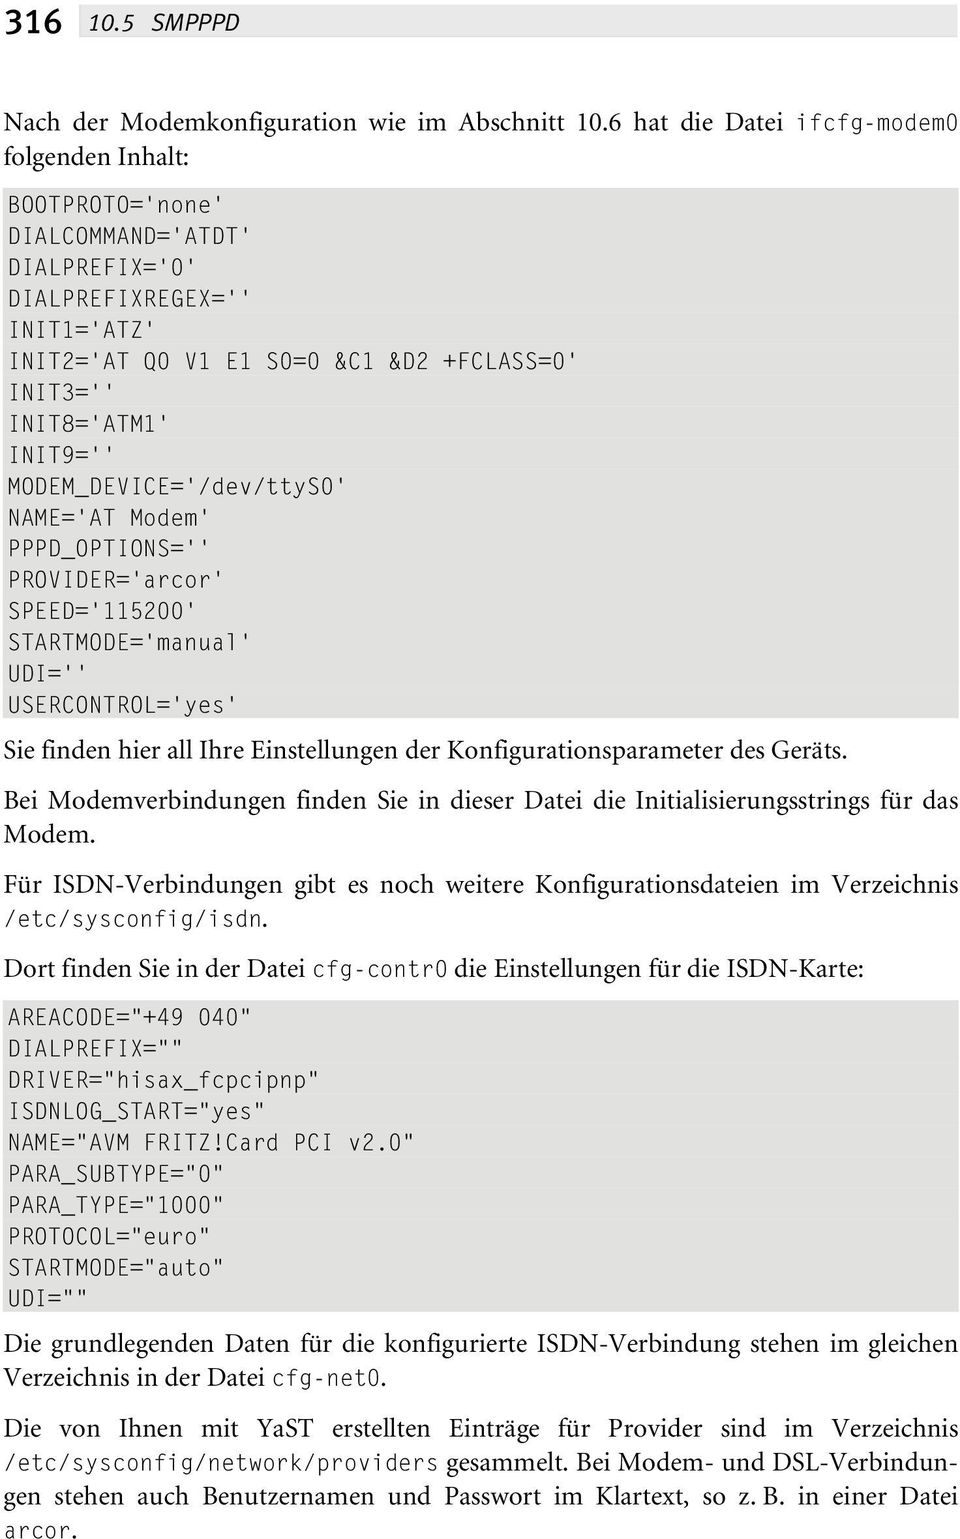 INIT9='' MODEM_DEVICE='/dev/ttyS0' NAME='AT Modem' PPPD_OPTIONS='' PROVIDER='arcor' SPEED='115200' STARTMODE='manual' UDI='' USERCONTROL='yes' Sie finden hier all Ihre Einstellungen der